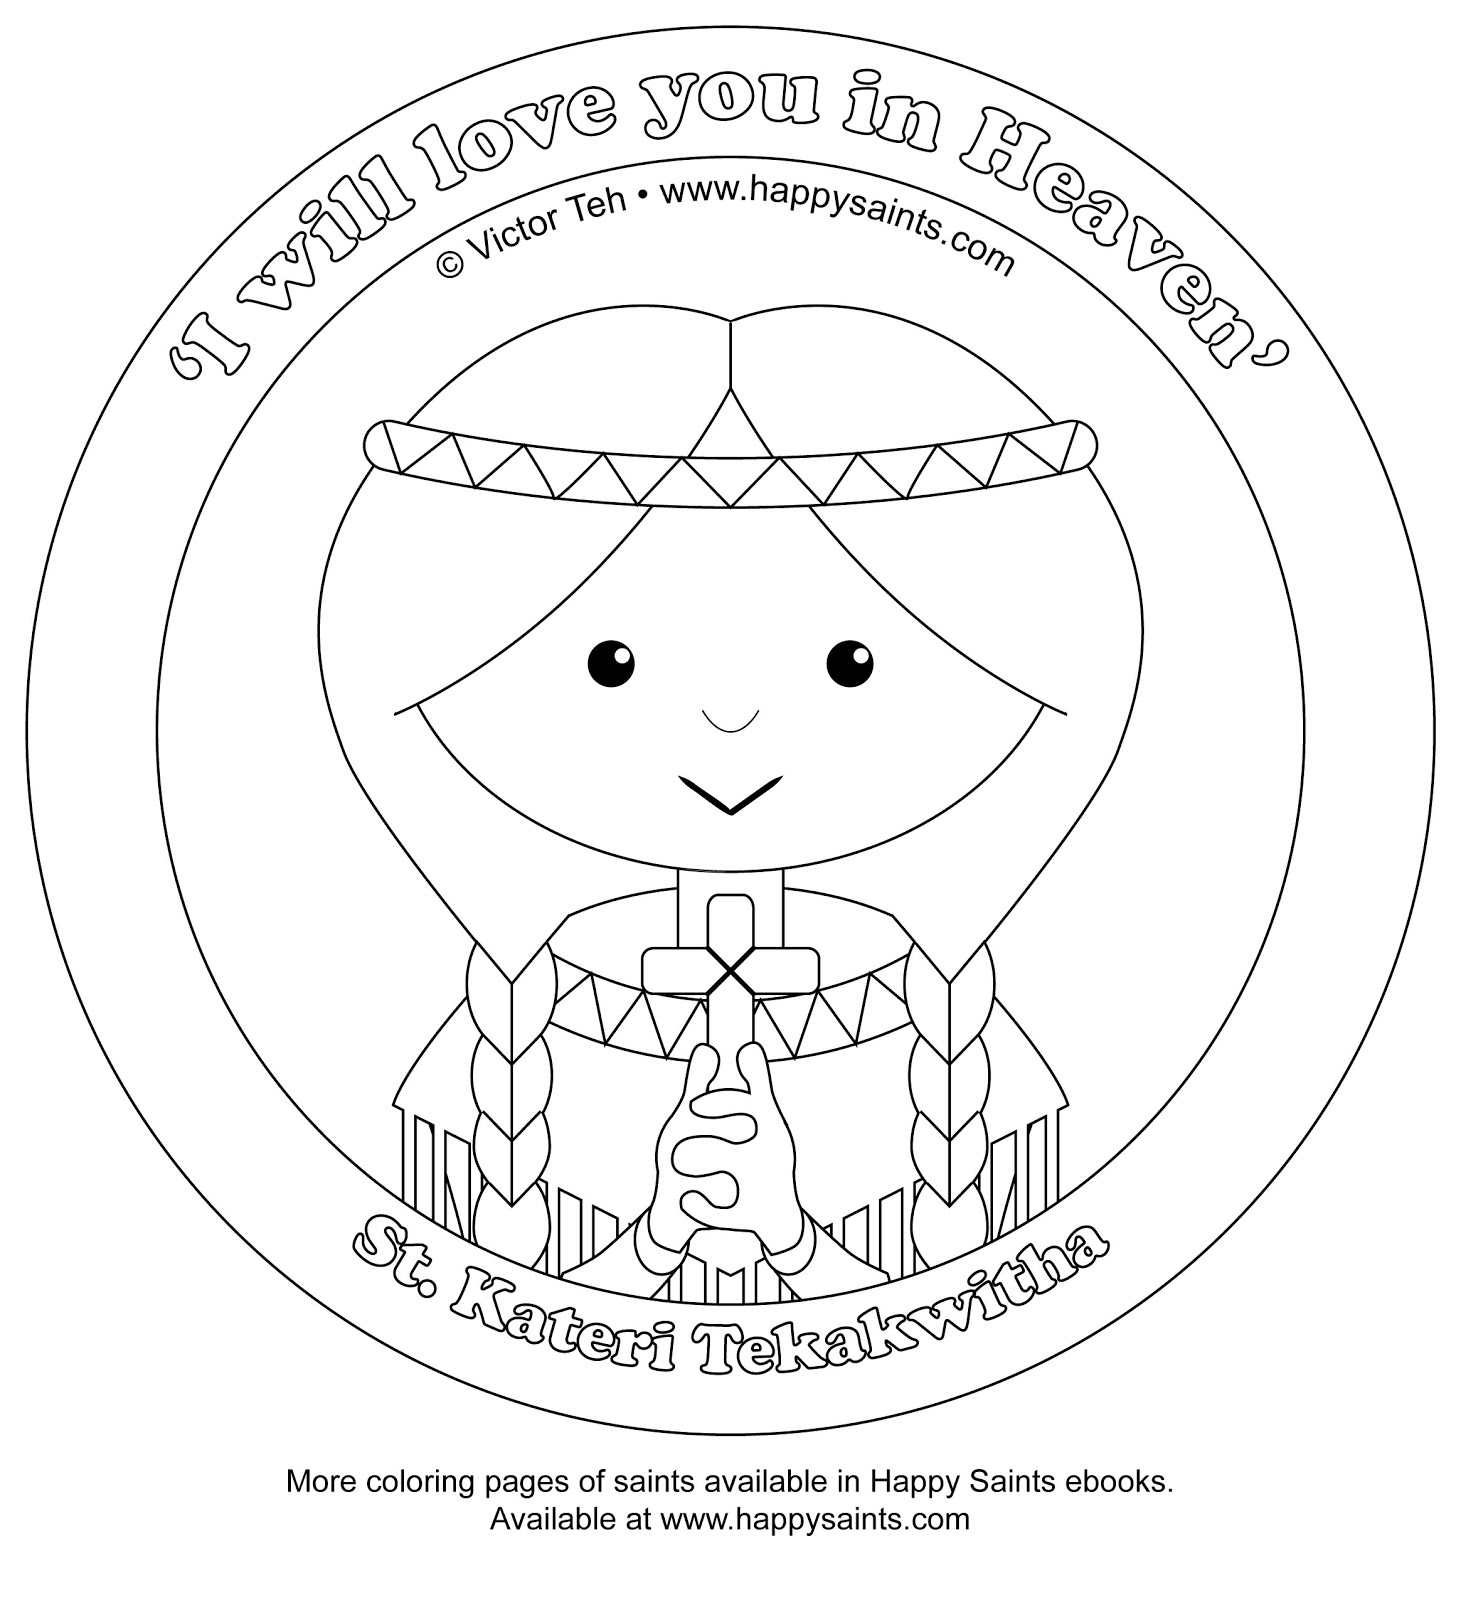 Happy saints coloring pages of st pedro and st kateri for St kateri coloring page